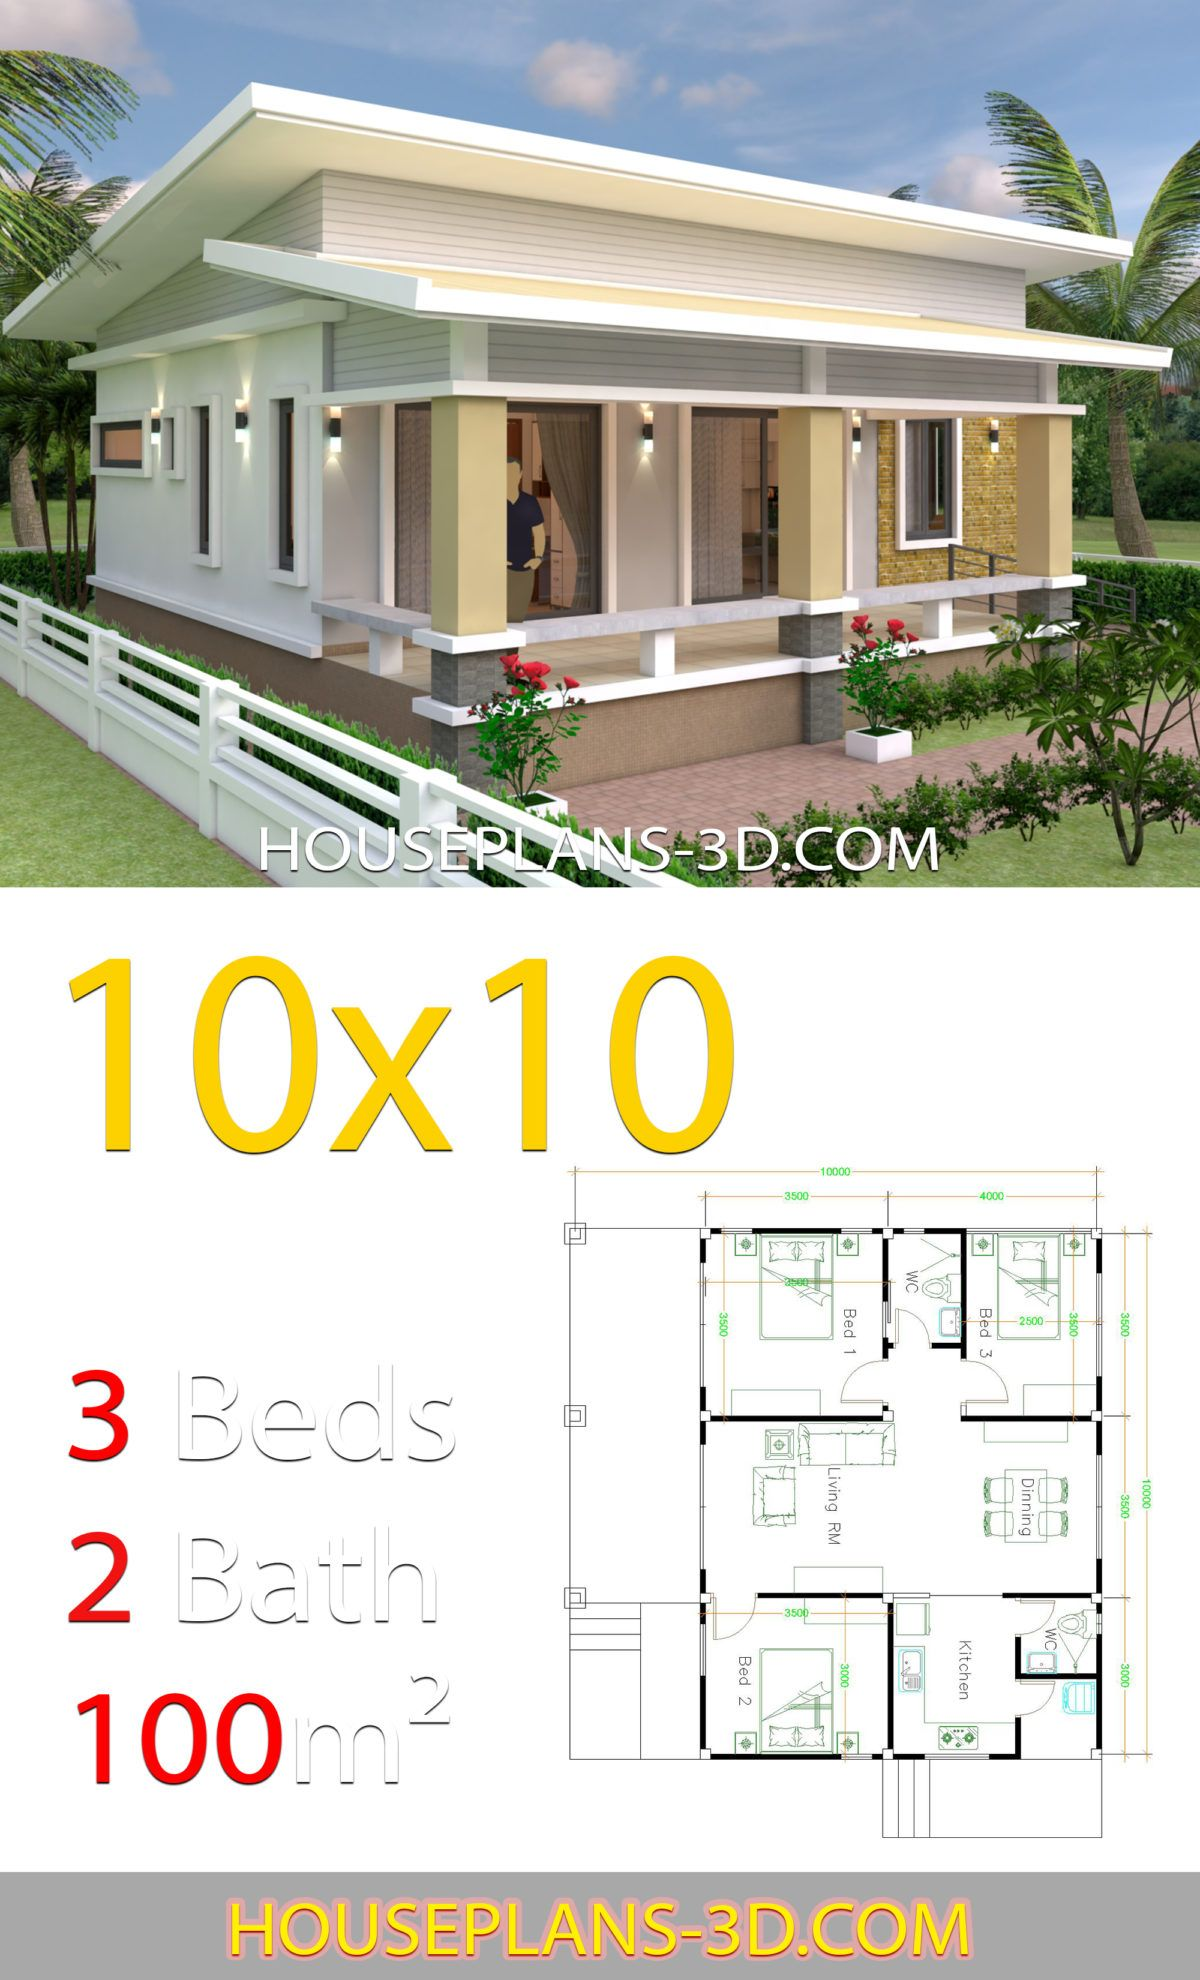 House Design 10x10 With 3 Bedrooms Full Interior In 2020